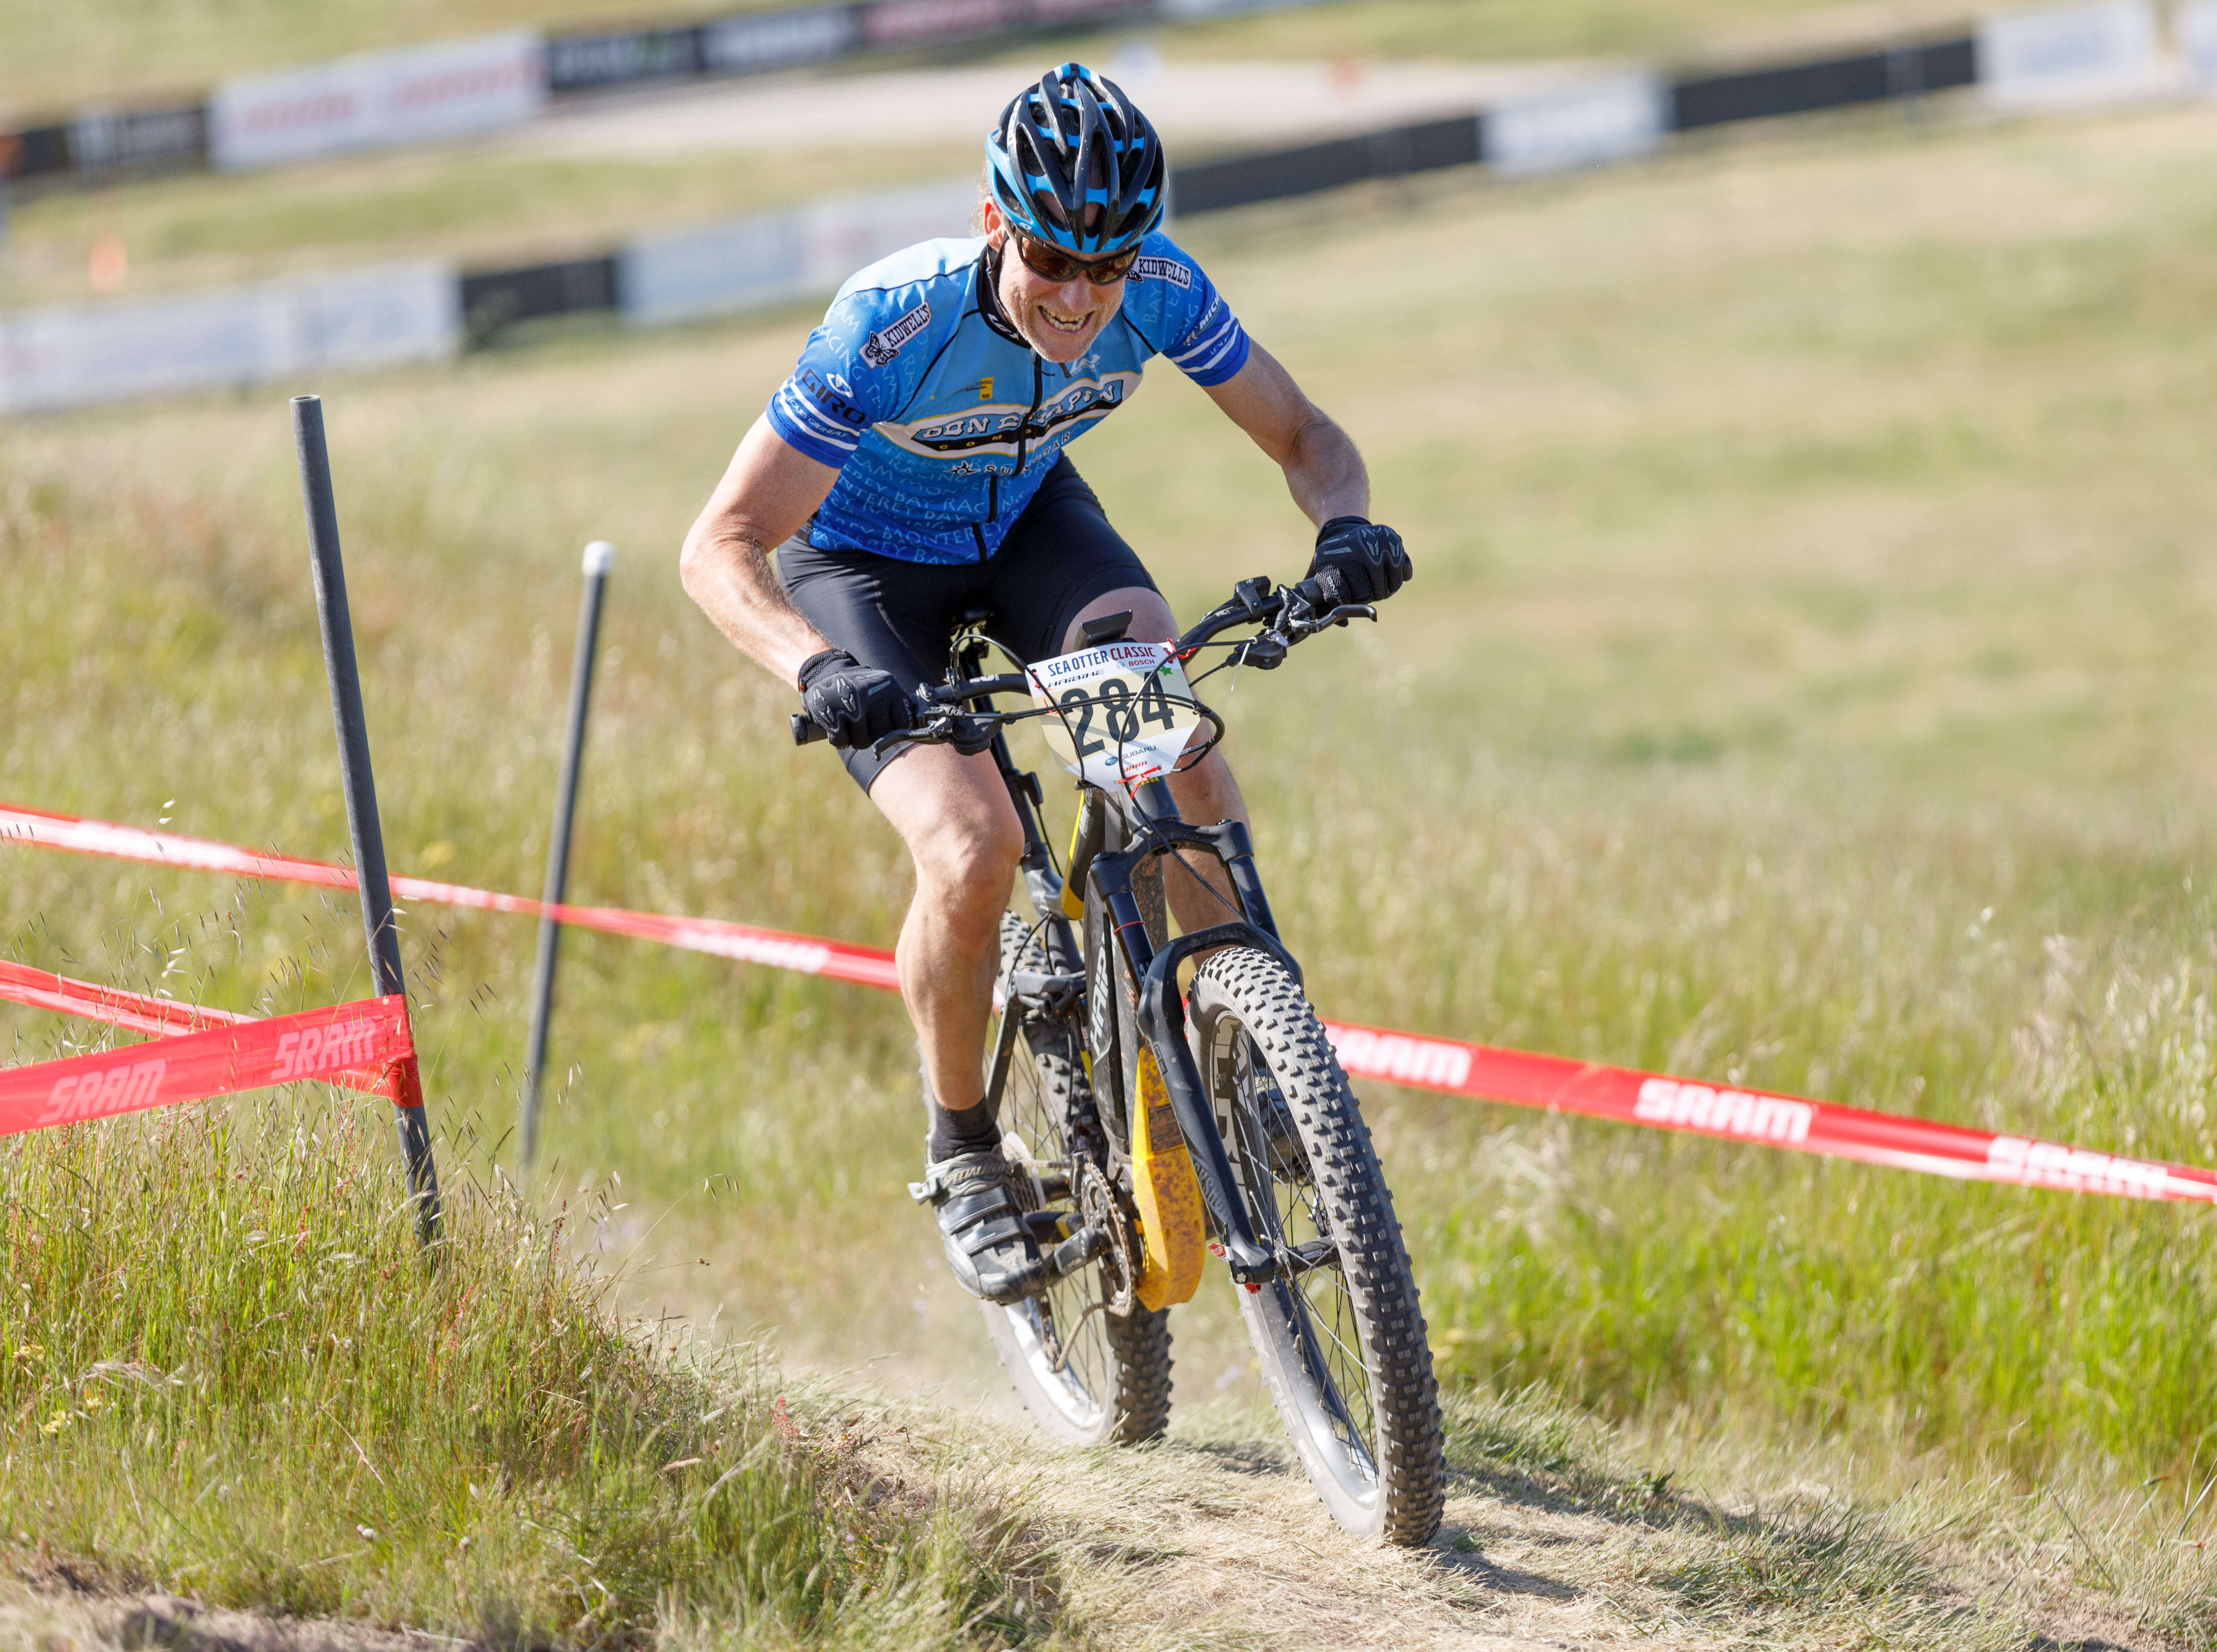 Monterey cyclist Chris Toplarski thought the Sea Otter Classic e-mountain bike race would be fun -- but then his competitive instincts kicked in.